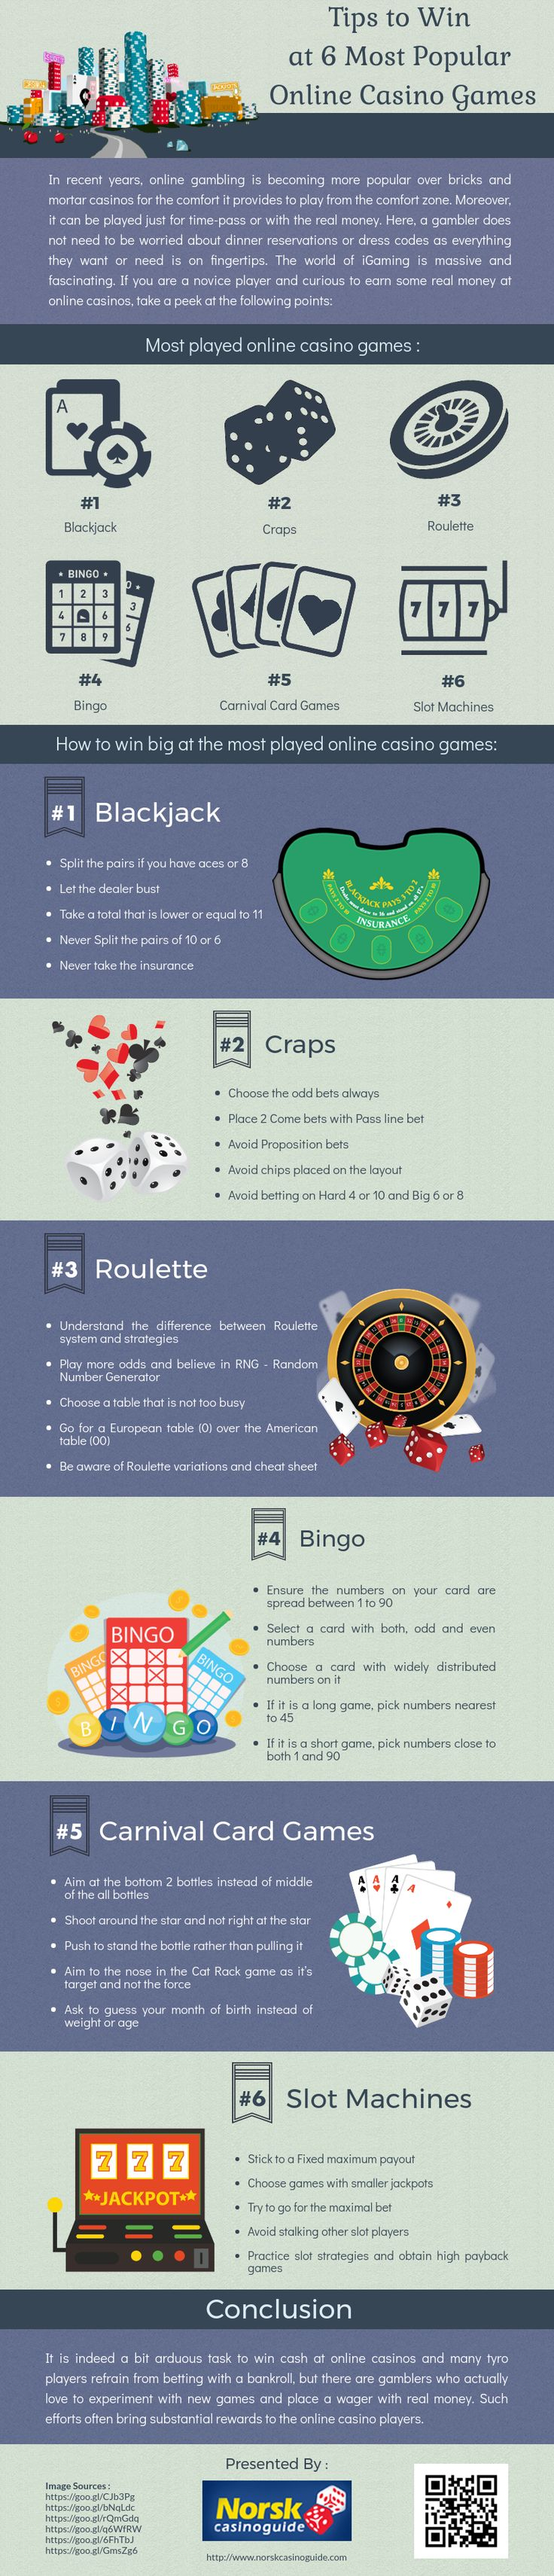 Tips to Win at 6 Most Popular Online Casino Games